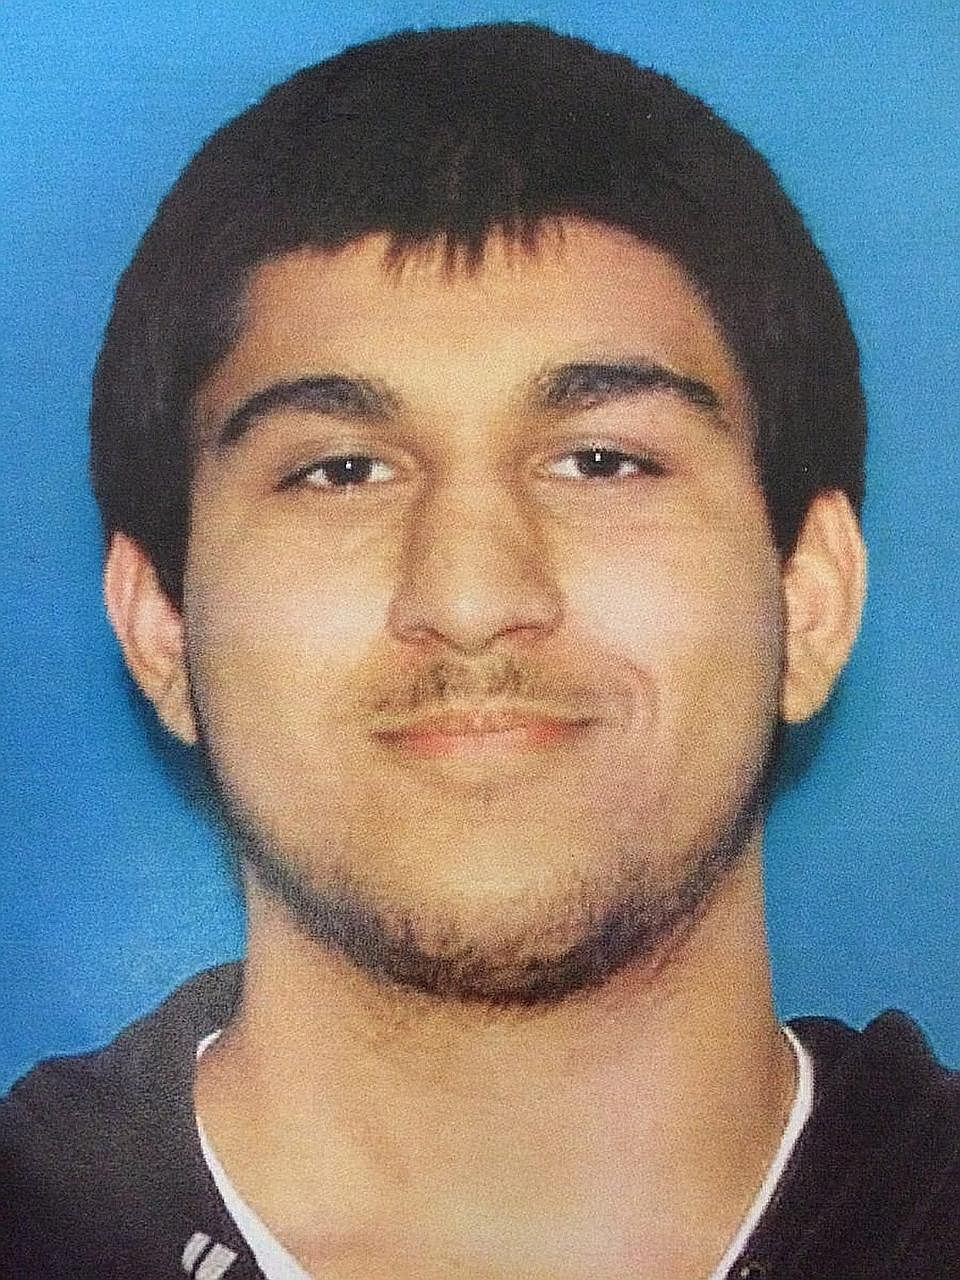 Cetin, 20, was arrested about 24 hours after five people were shot dead at a mall in Washington.